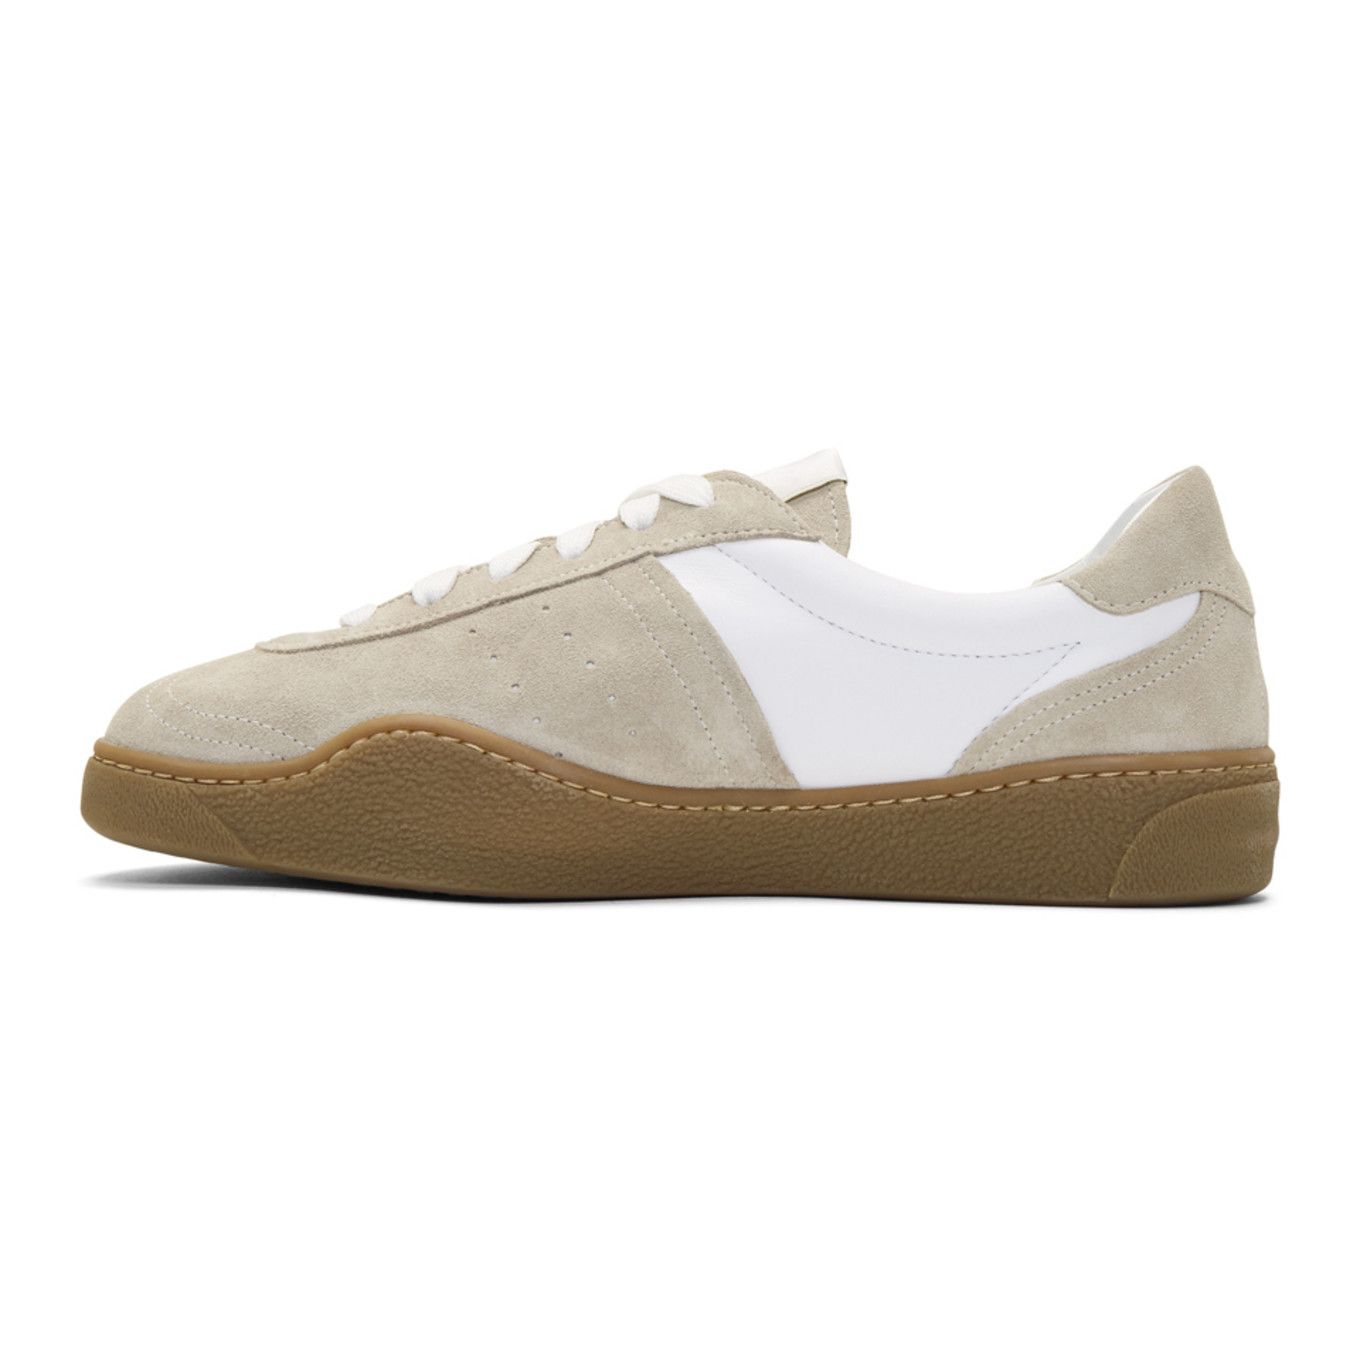 Acne Leather Lars Sneakers Cheap Price In China hvdX9U